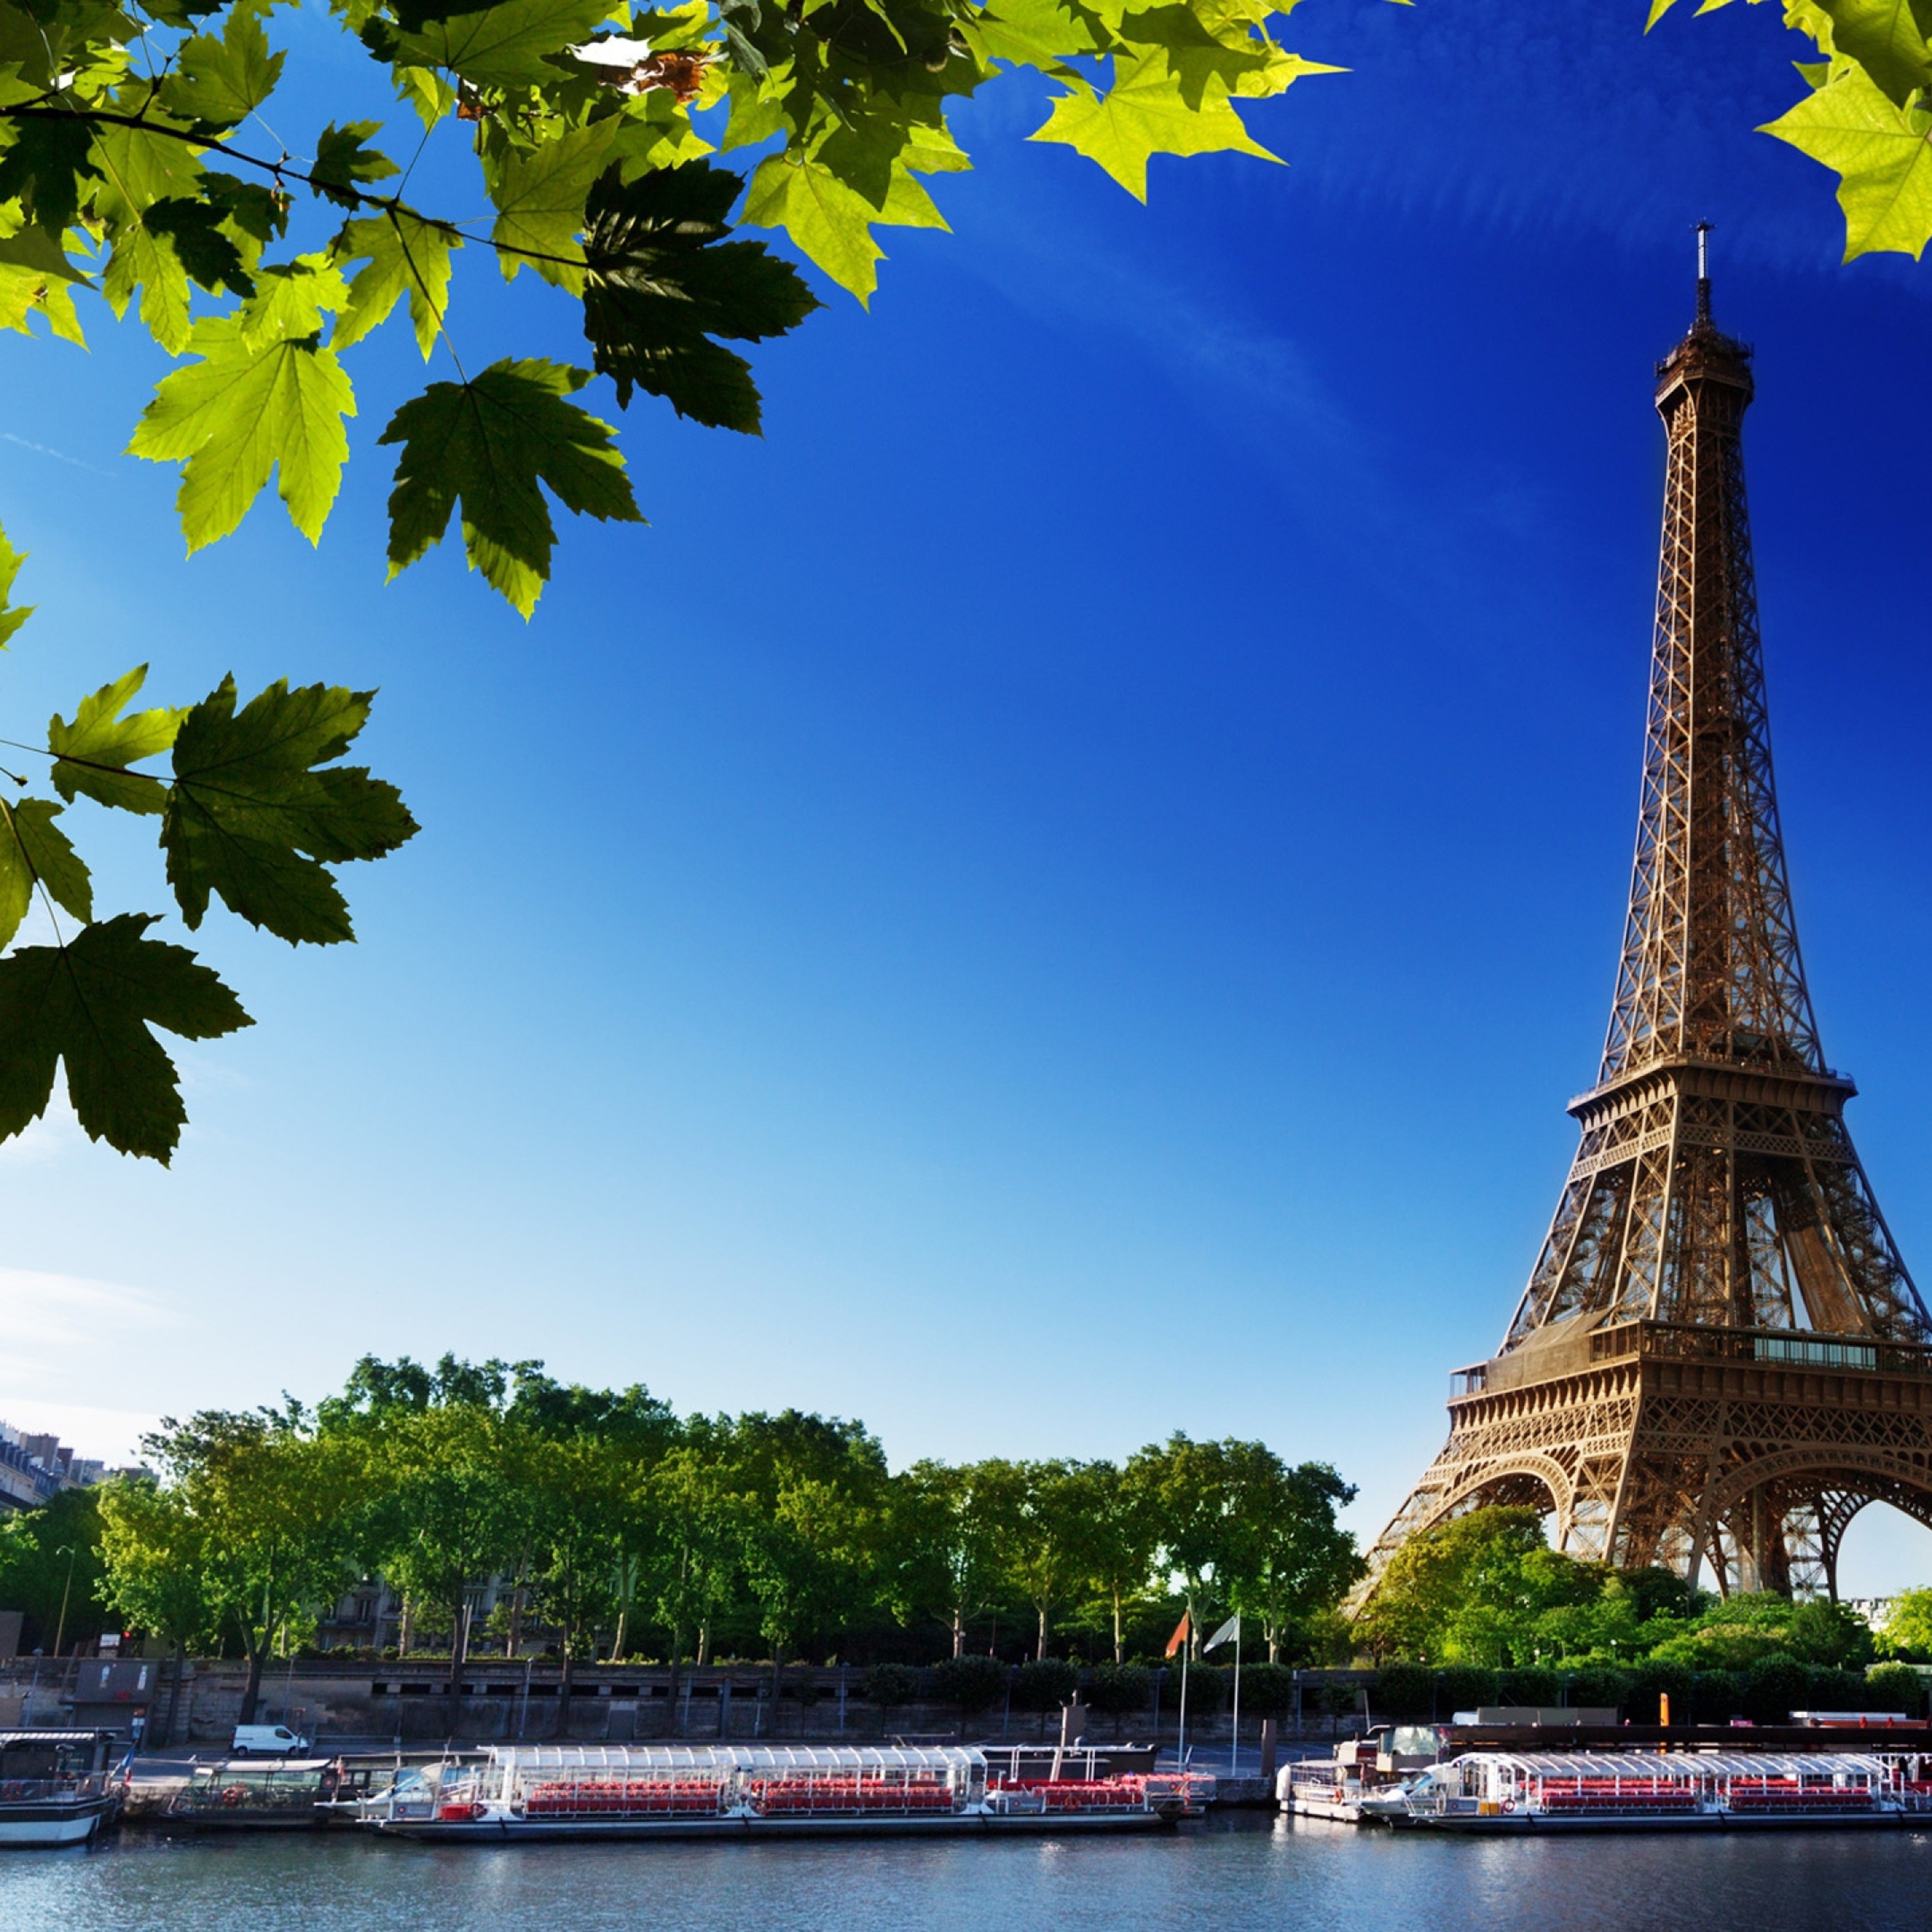 2932x2932 Eiffel Tower Paris 4k Ipad Pro Retina Display Hd 4k Wallpapers Images Backgrounds Photos And Pictures